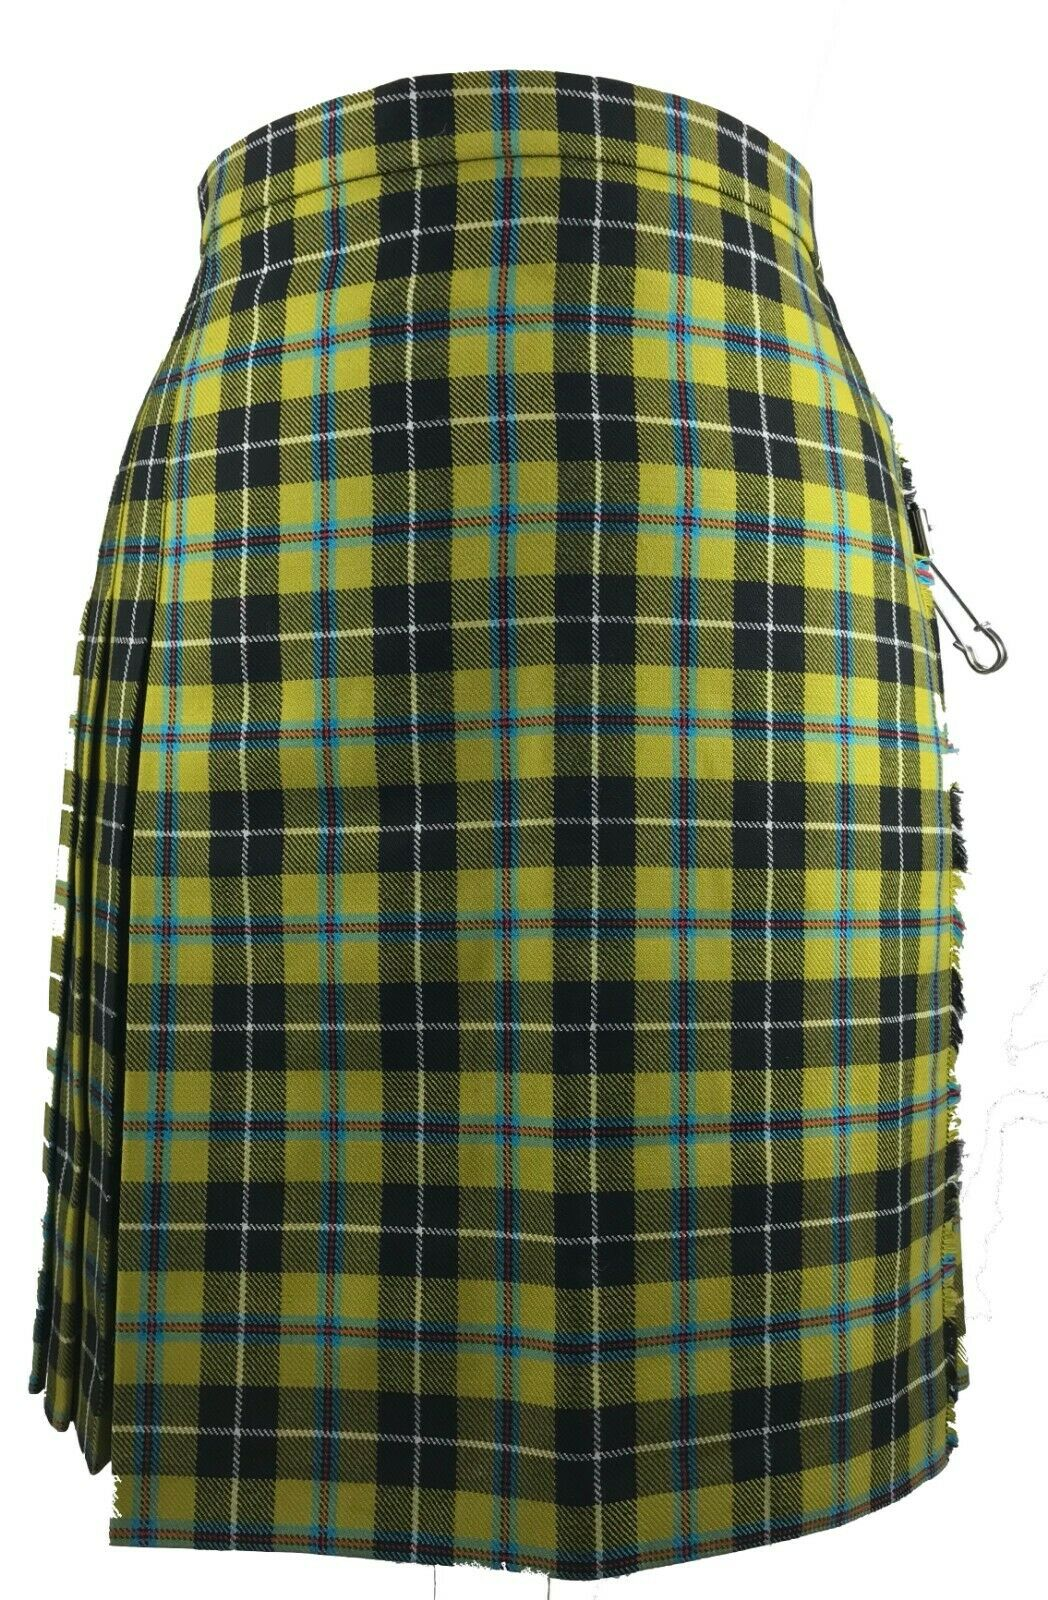 Ladies Kilt 100% Pure Wool Cornish National Tartan Knee Length Design New